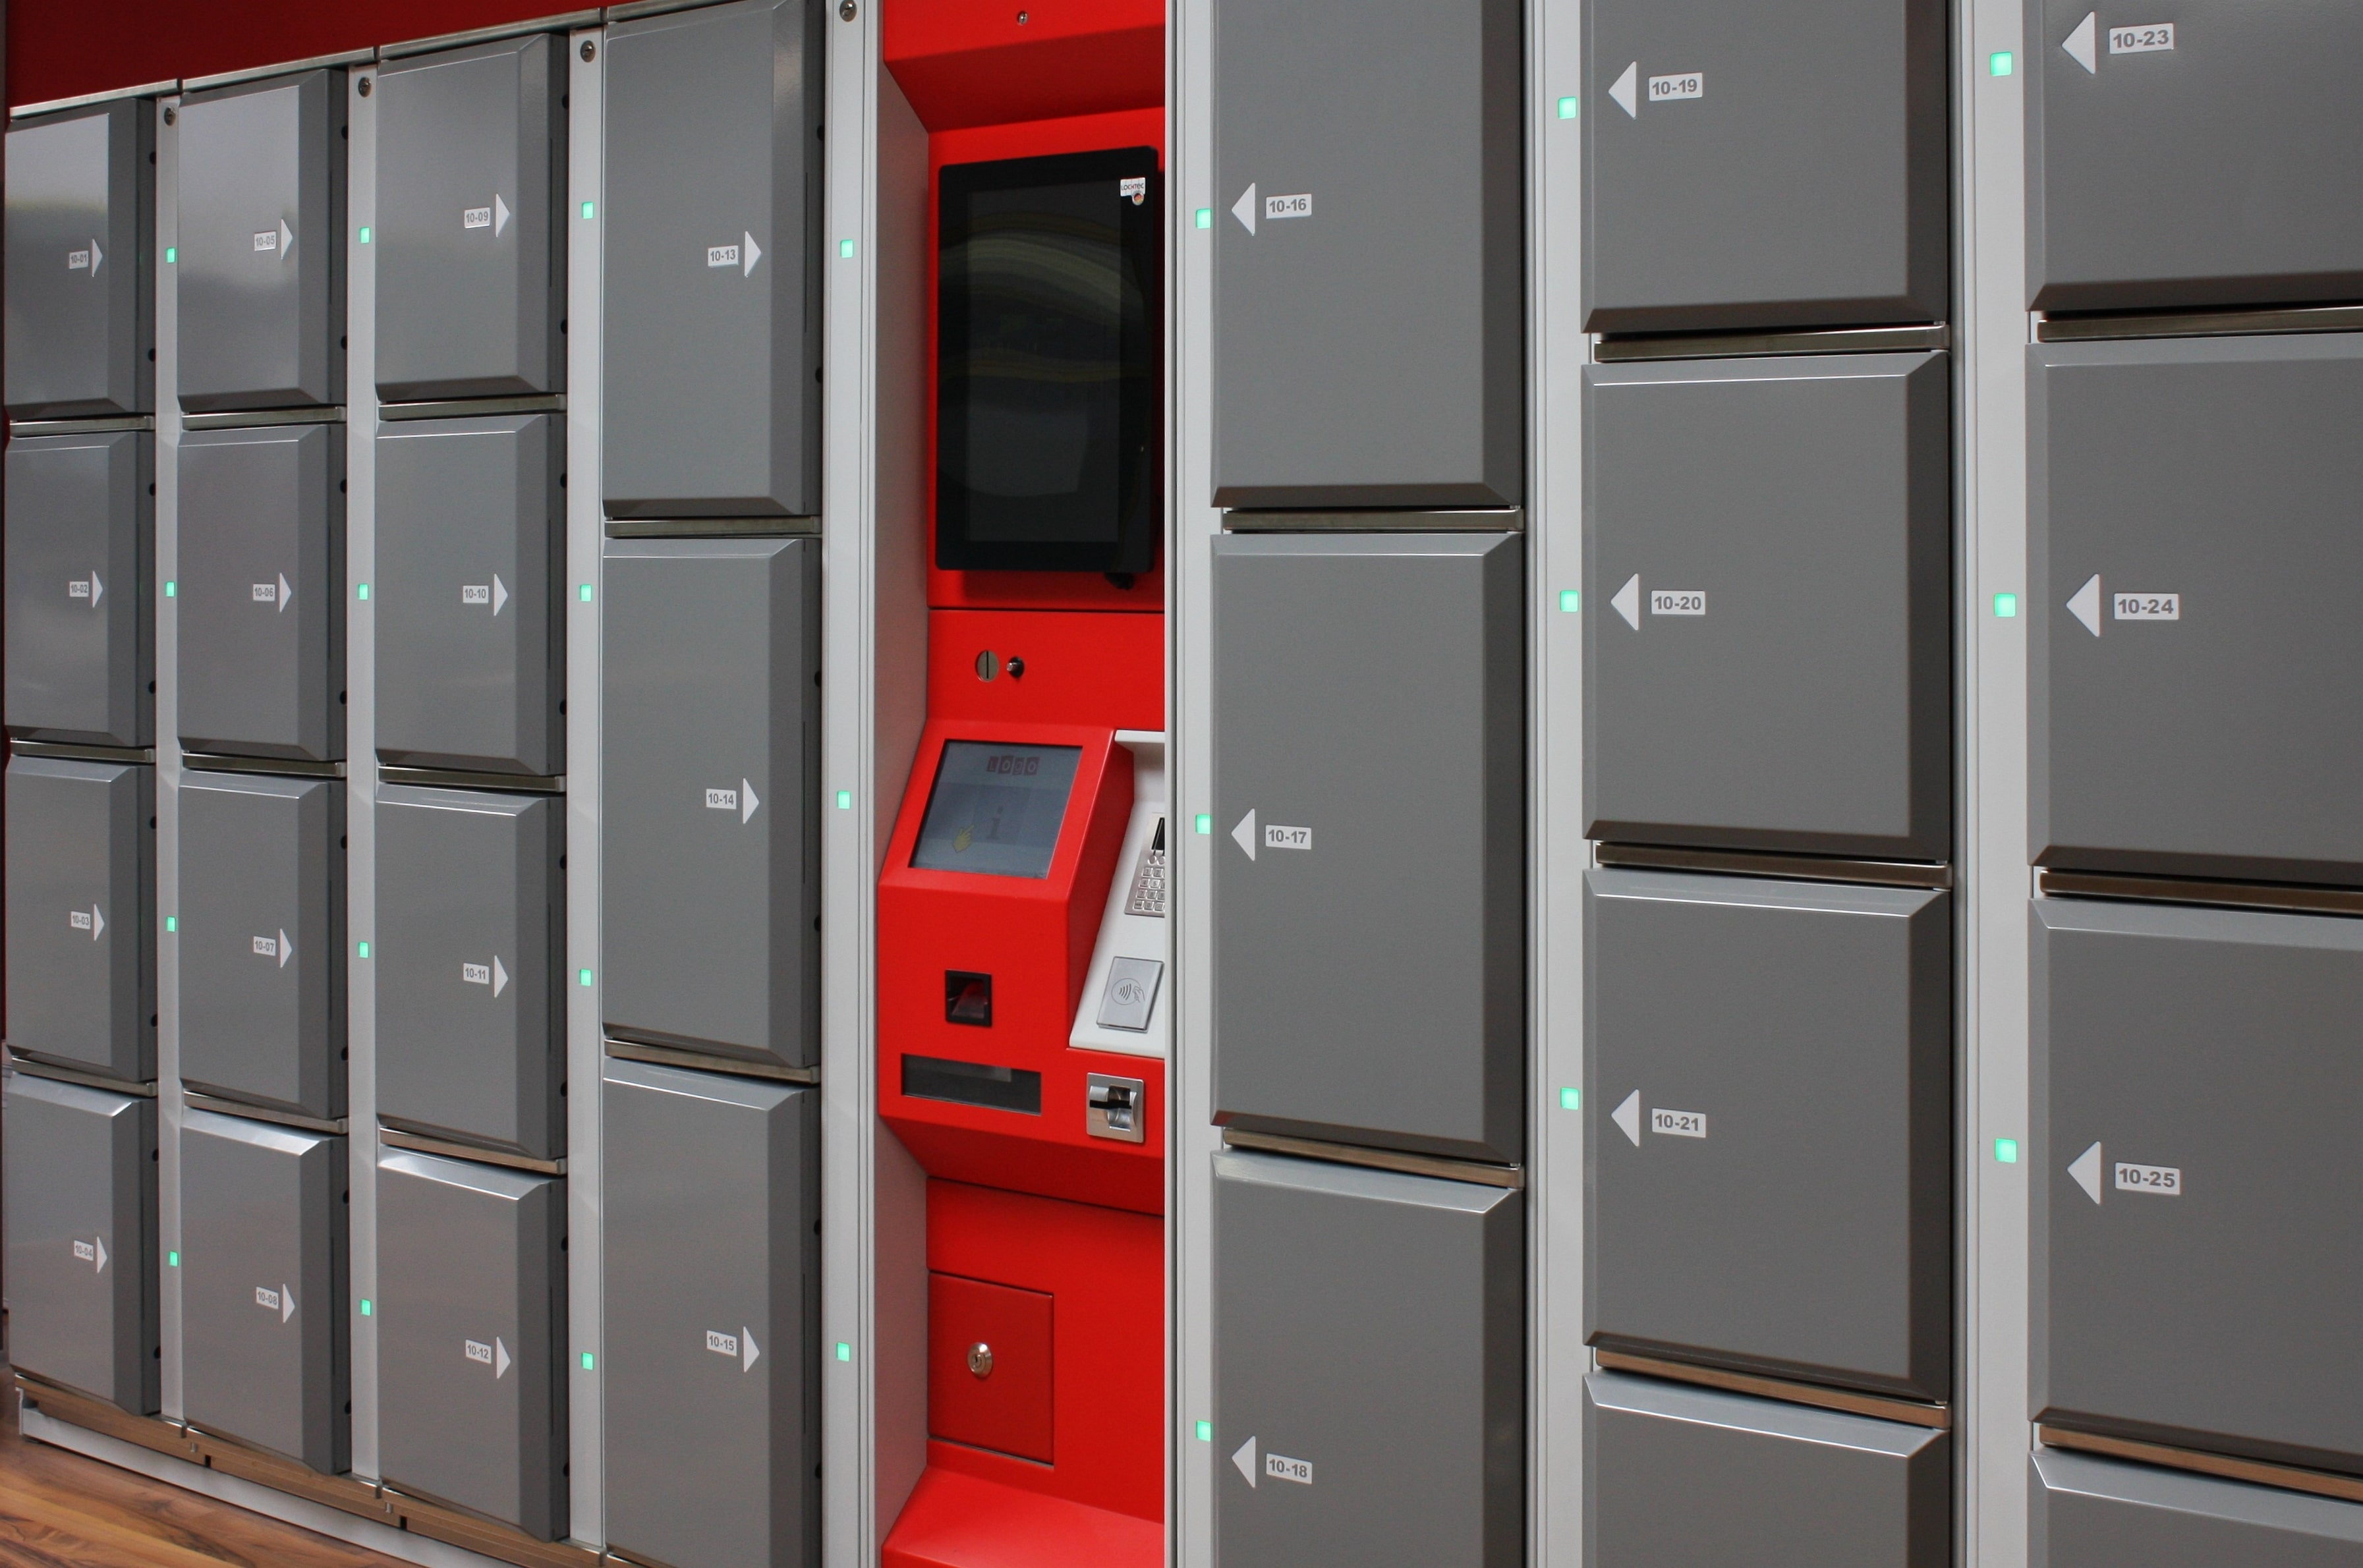 Smart lockers Locksafe5. Steel lockers guarantee safe storage of luggage, bags, electronic devices and belongings.